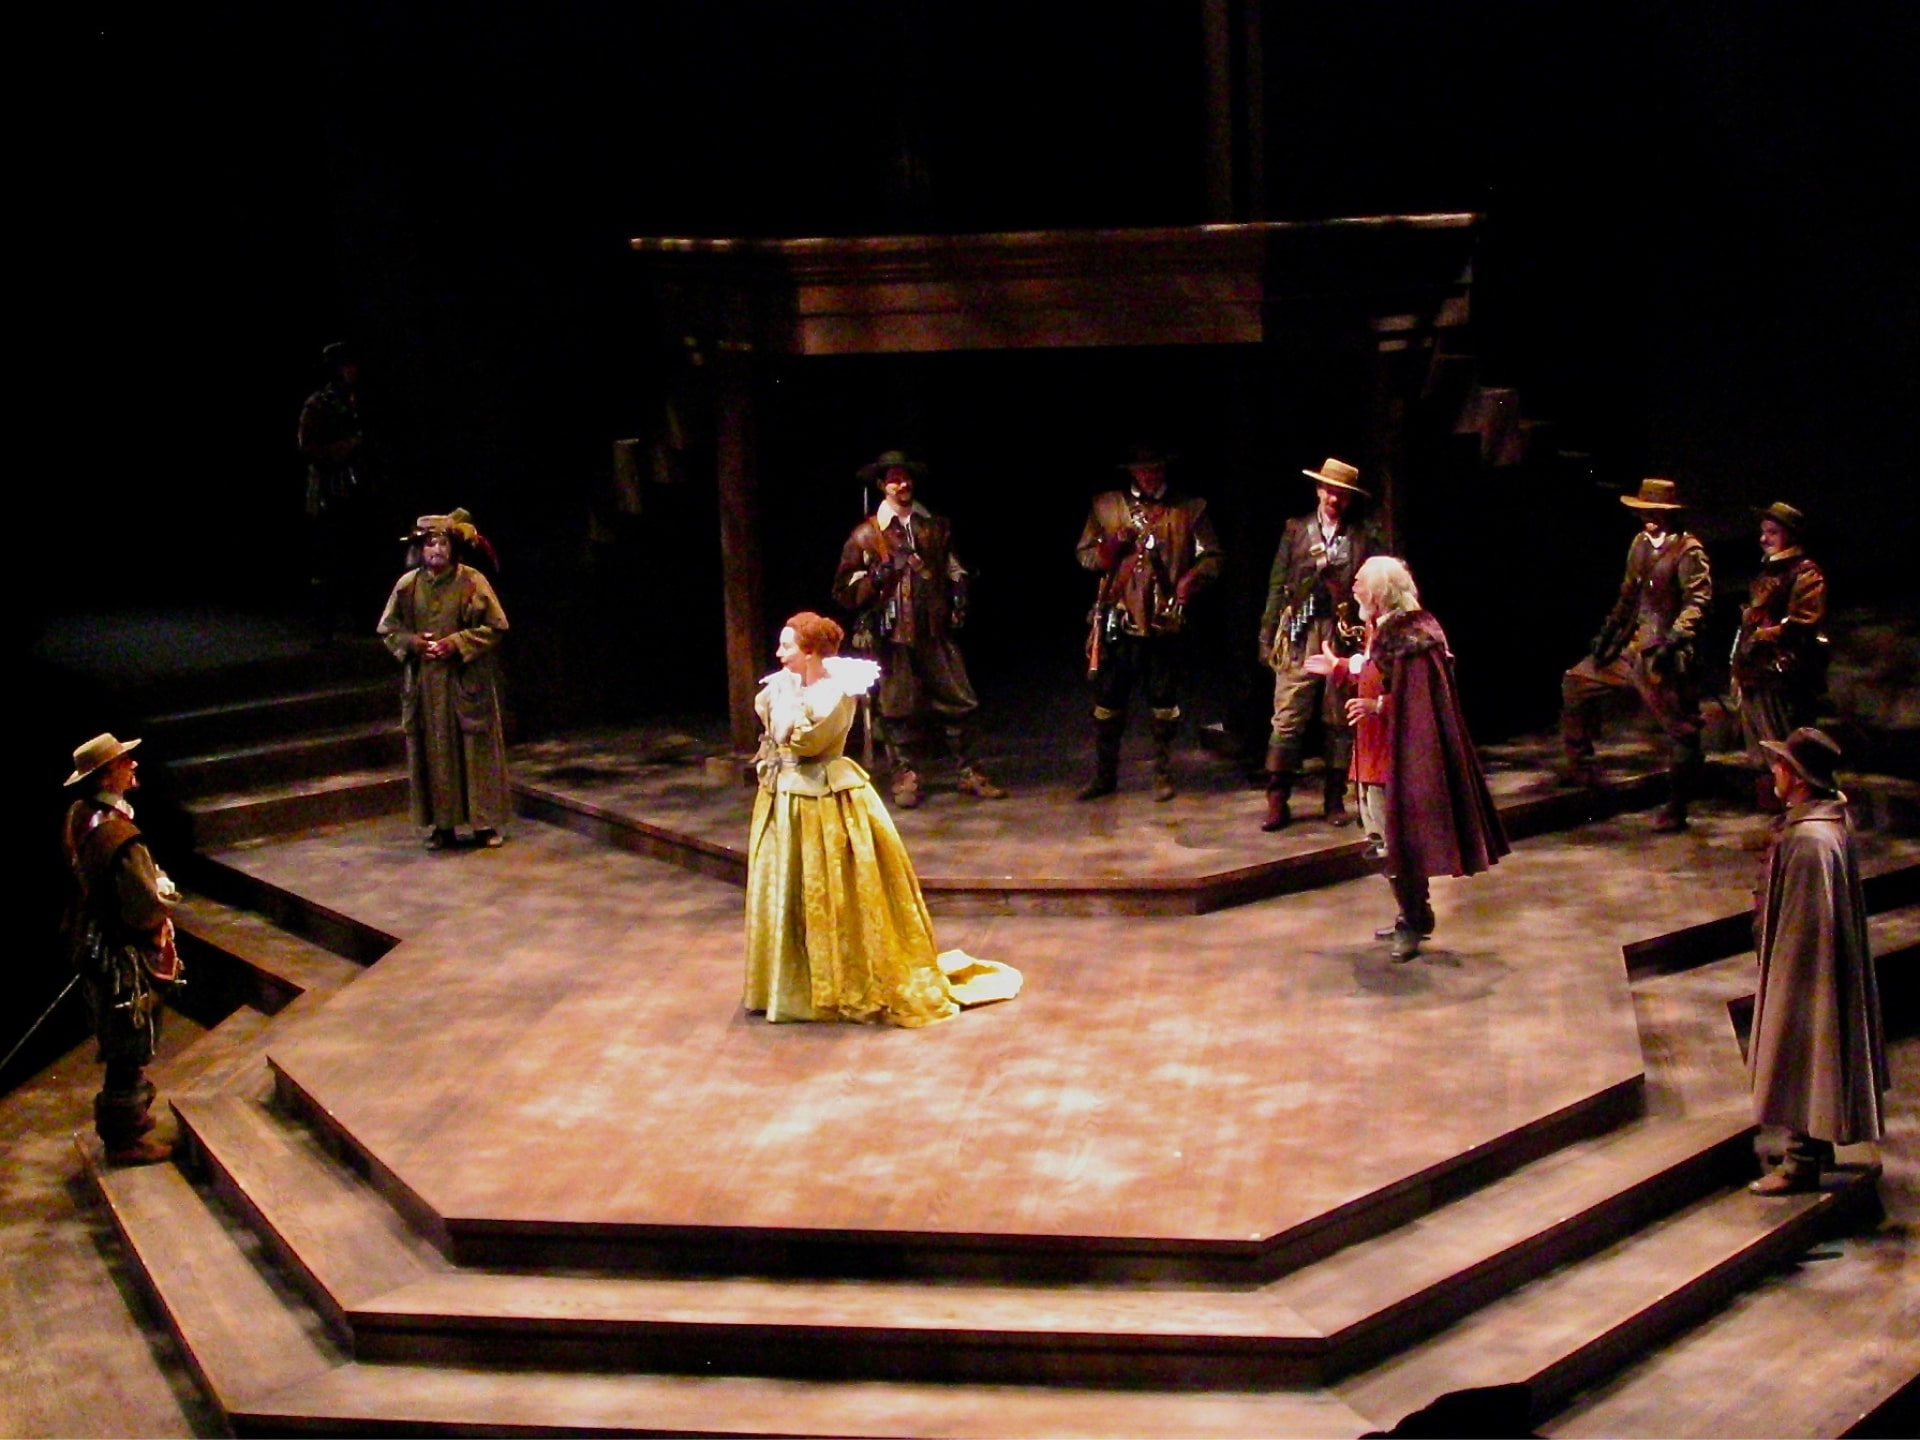 Red-haired woman in yellow gown ignores king and courtiers in dappled light.